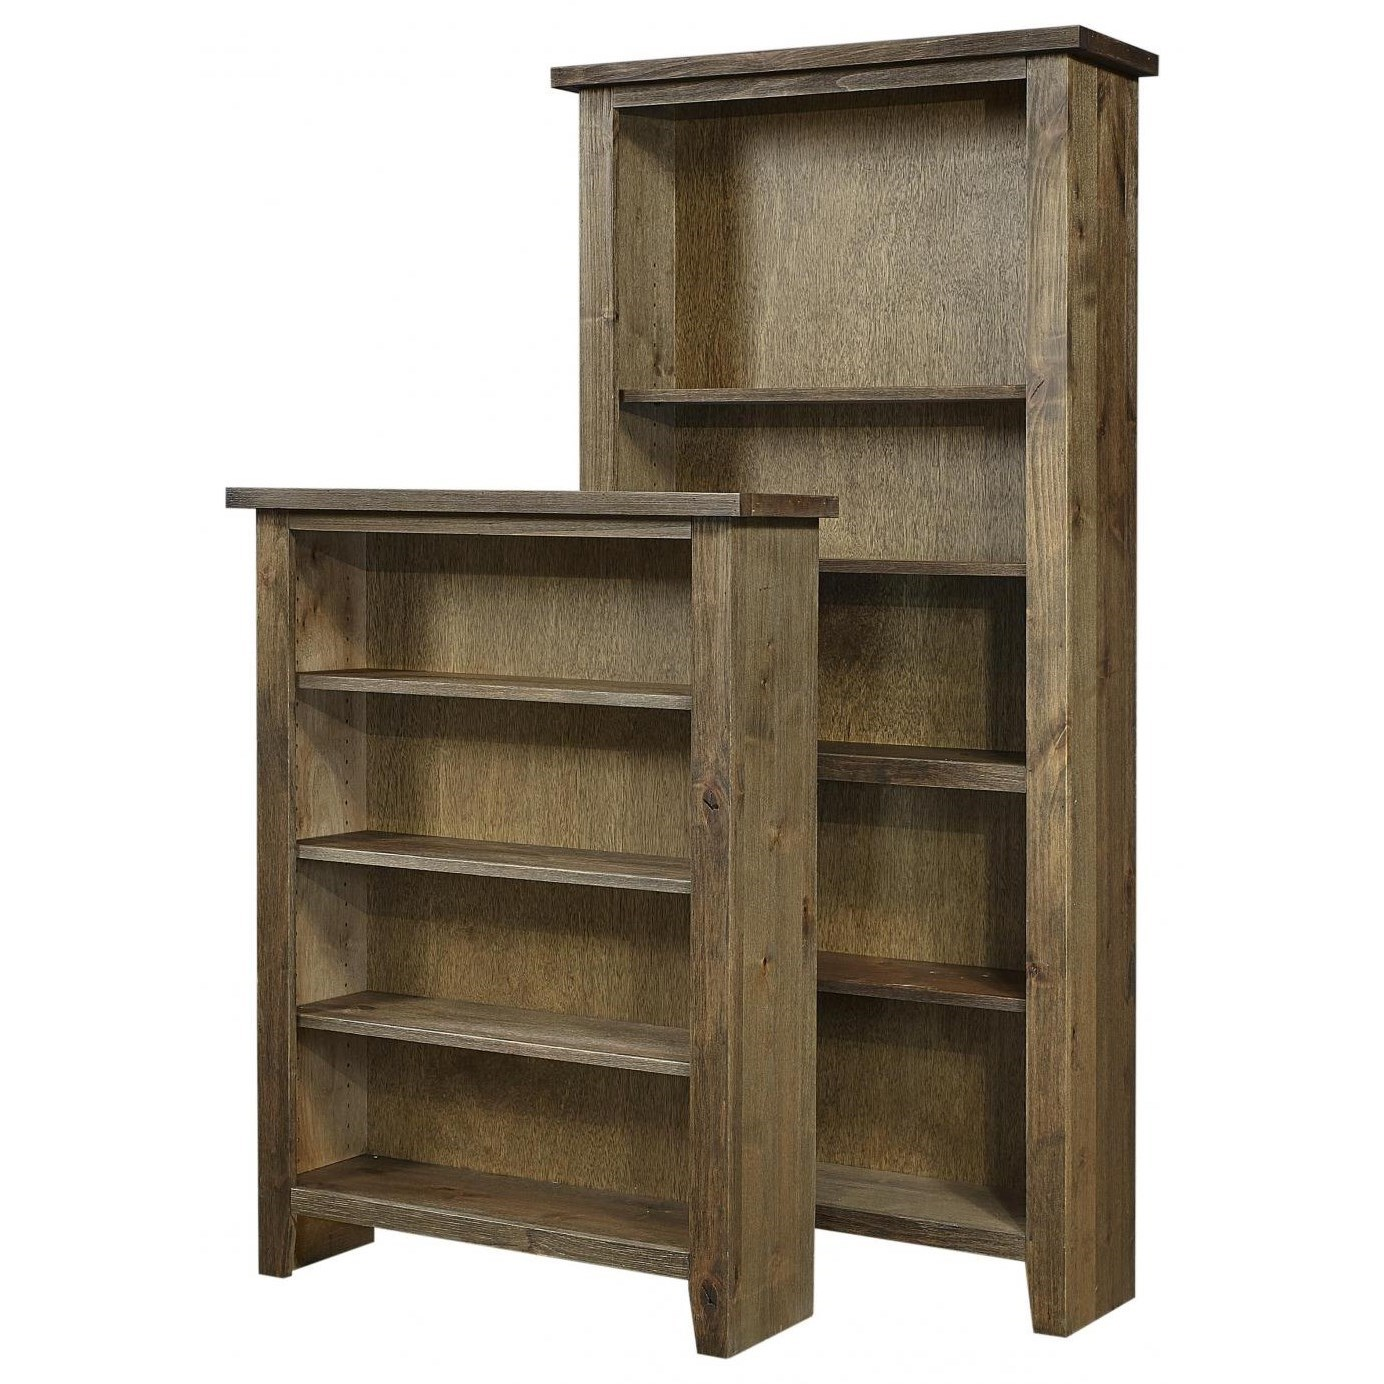 "Alder Grove Bookcase 60"" Height with 3 Shelves by Aspenhome at Stoney Creek Furniture"